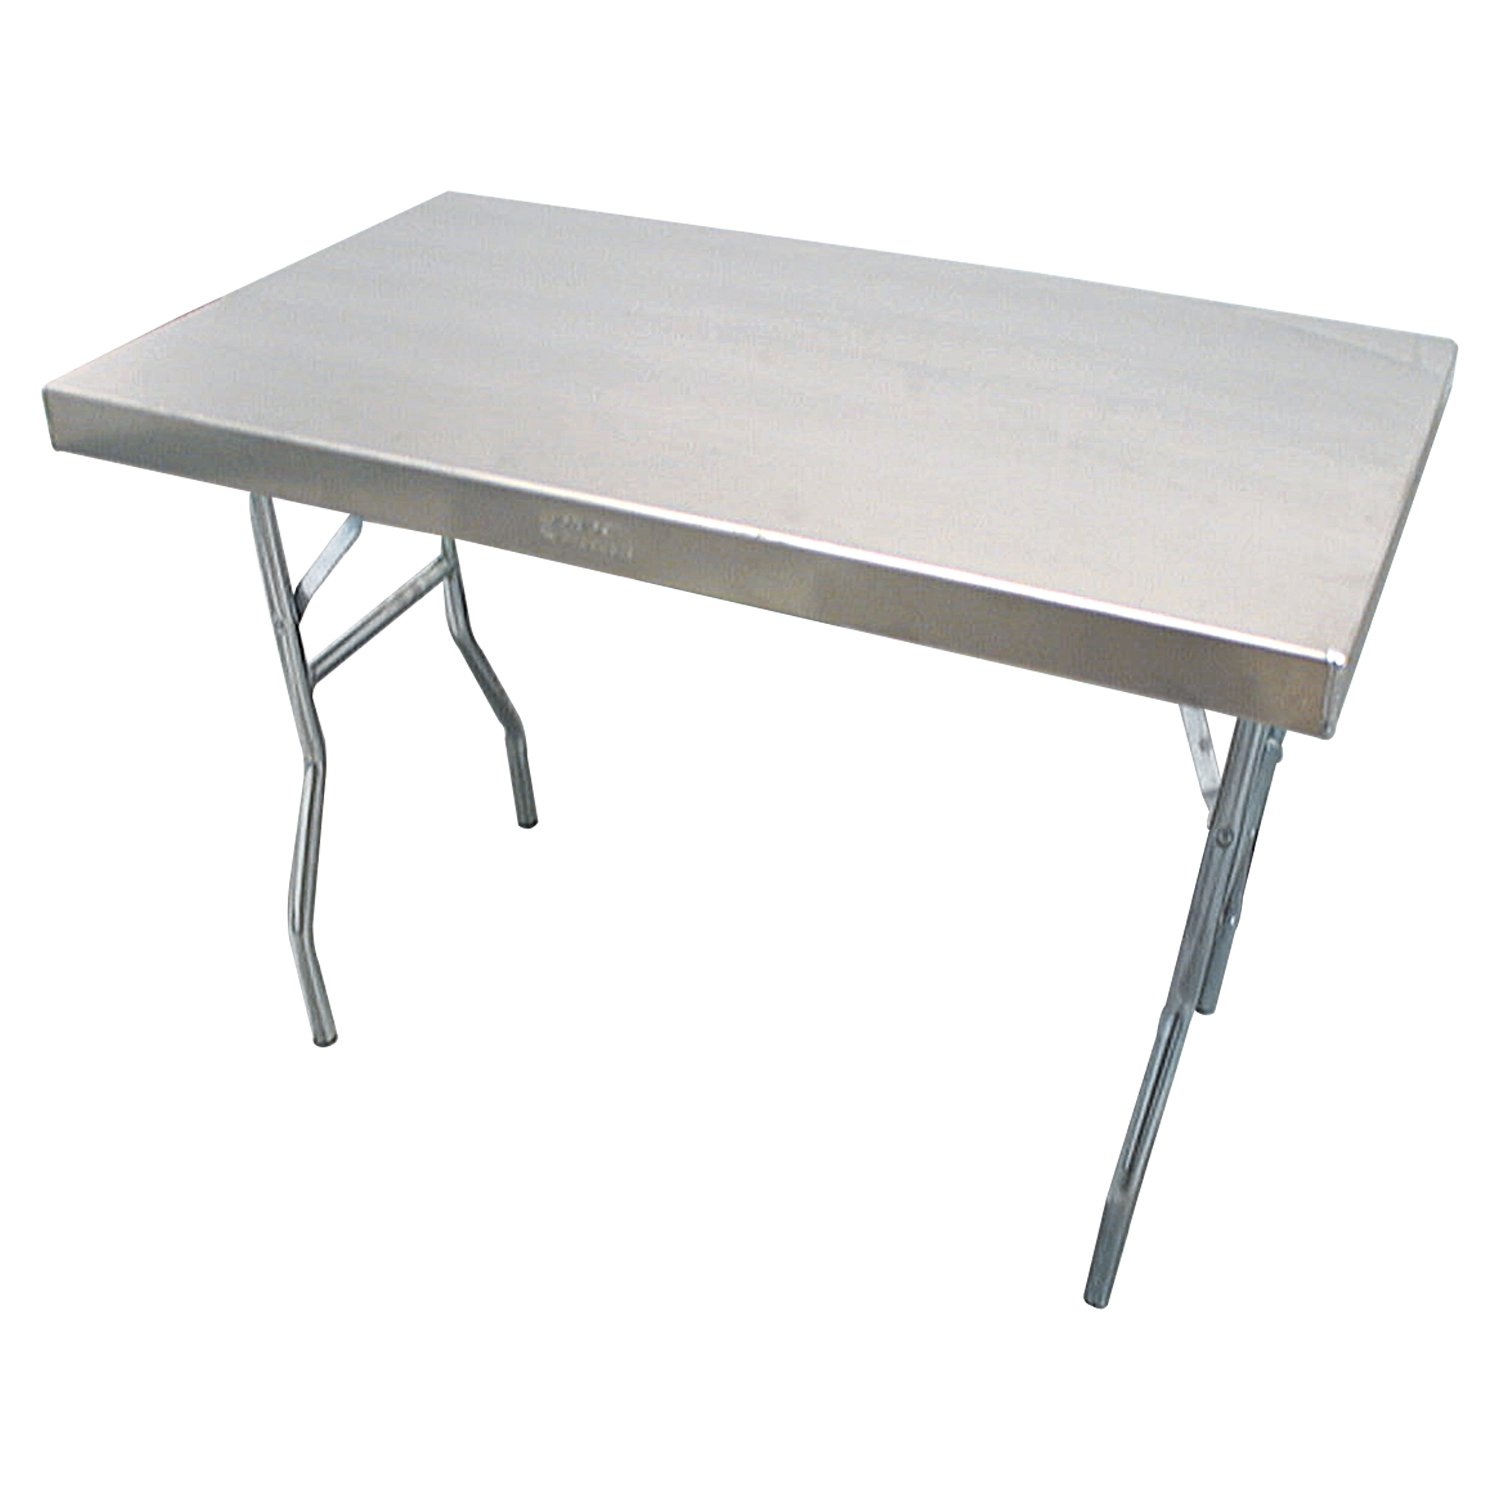 Pit Pal Products 156 25'' x 42'' Aluminum Work Table